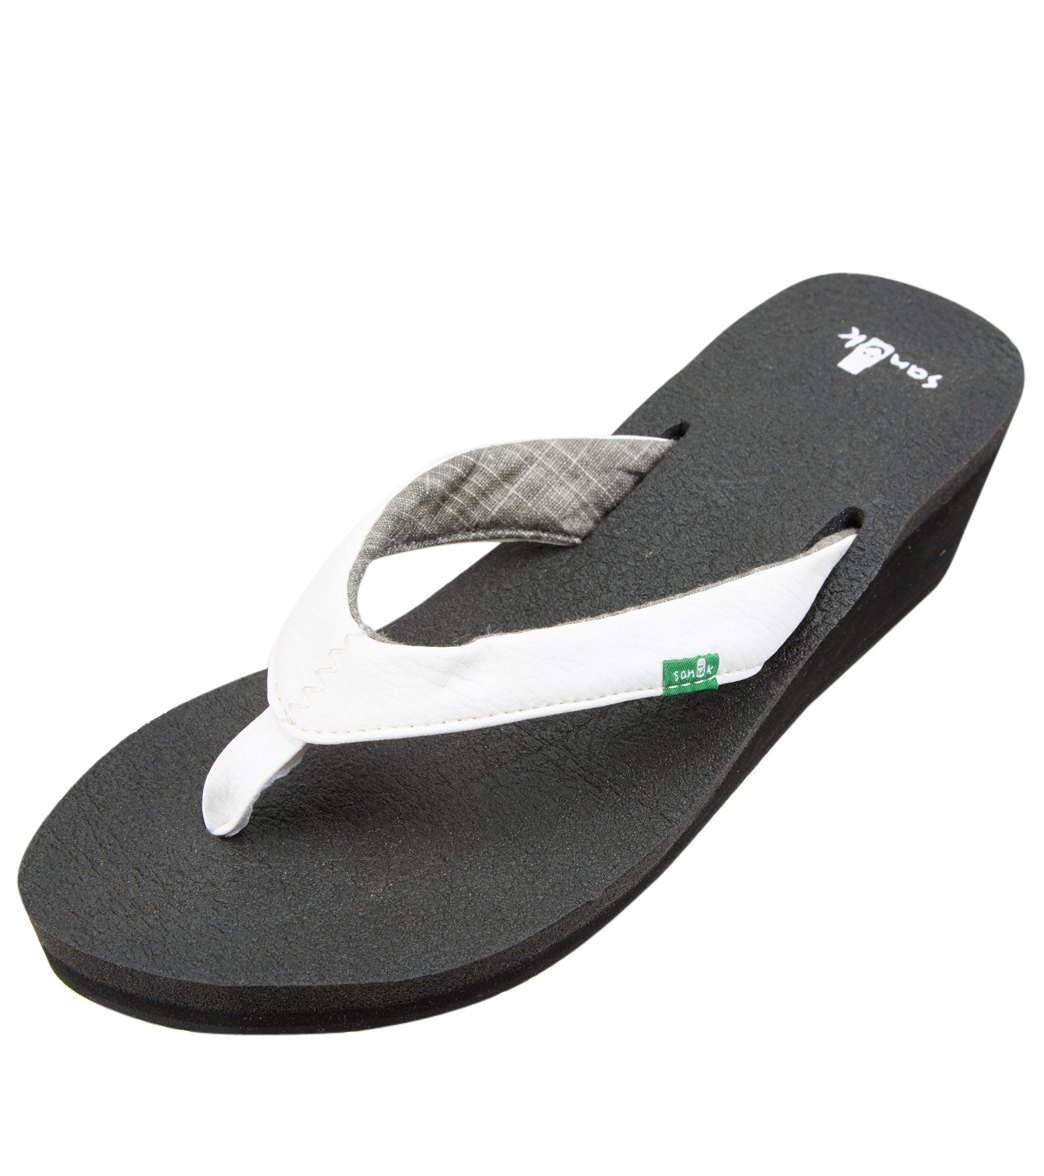 7ab21aad629f Sanuk Women s Yoga Mat Wedge Flip Flop at SwimOutlet.com